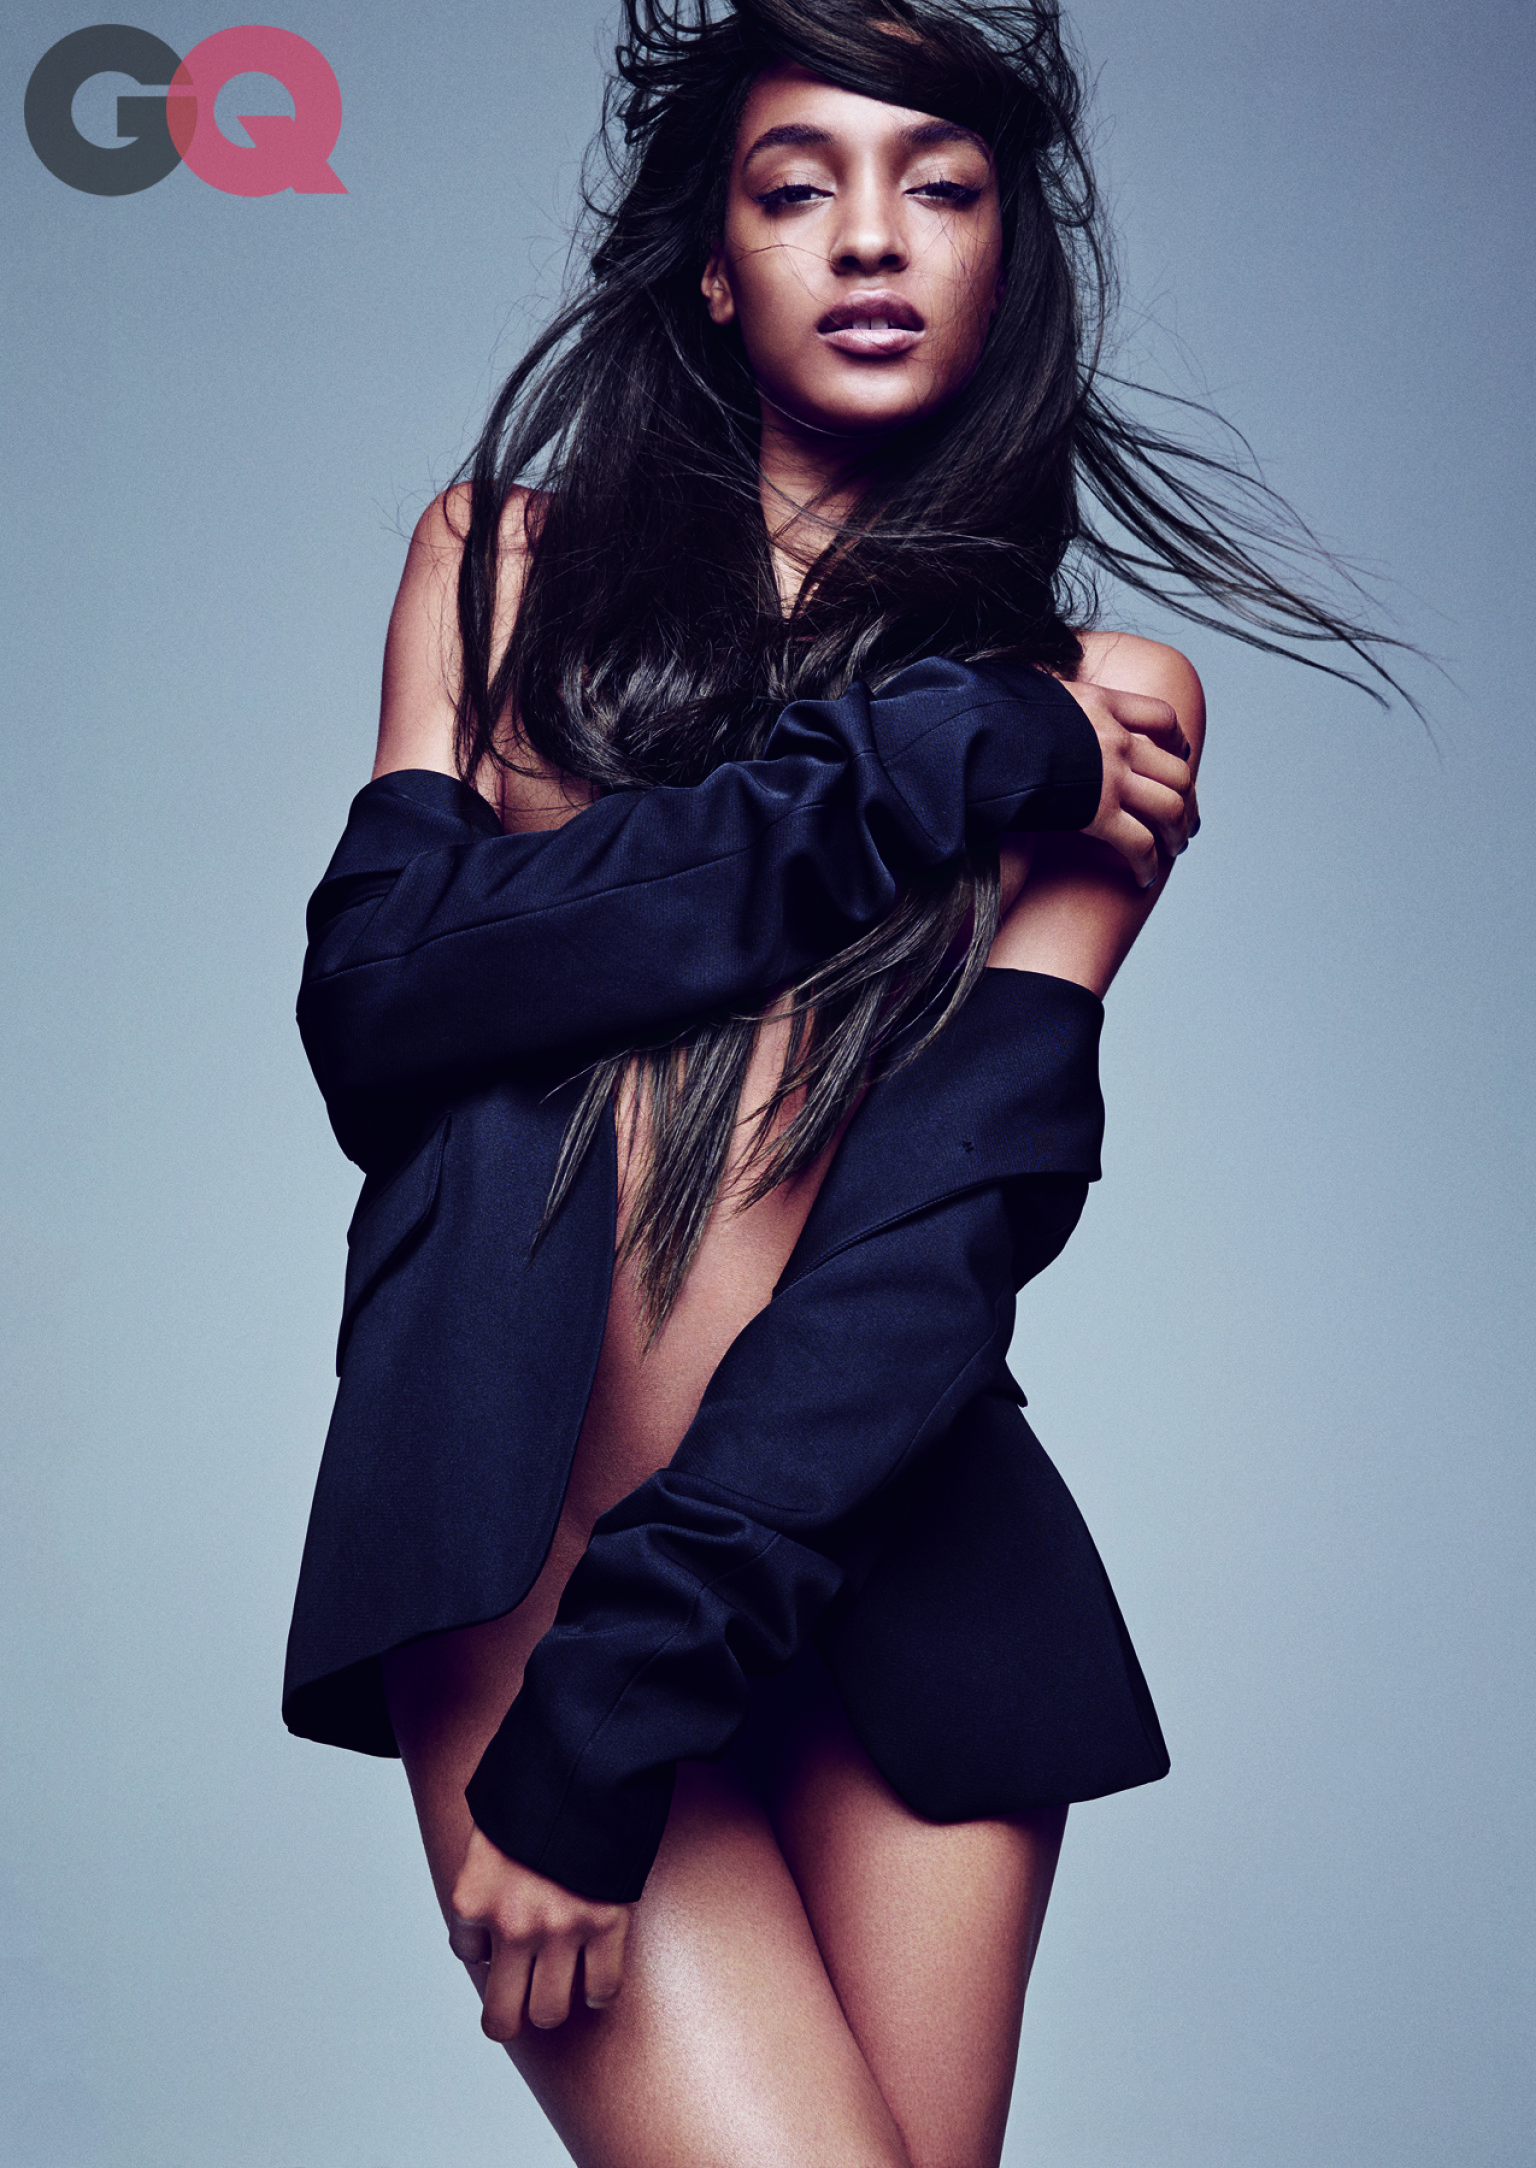 Jourdan Dunn Naked Model Bares All For Gq September Issue  She Looks Amazing, Obvi -3776